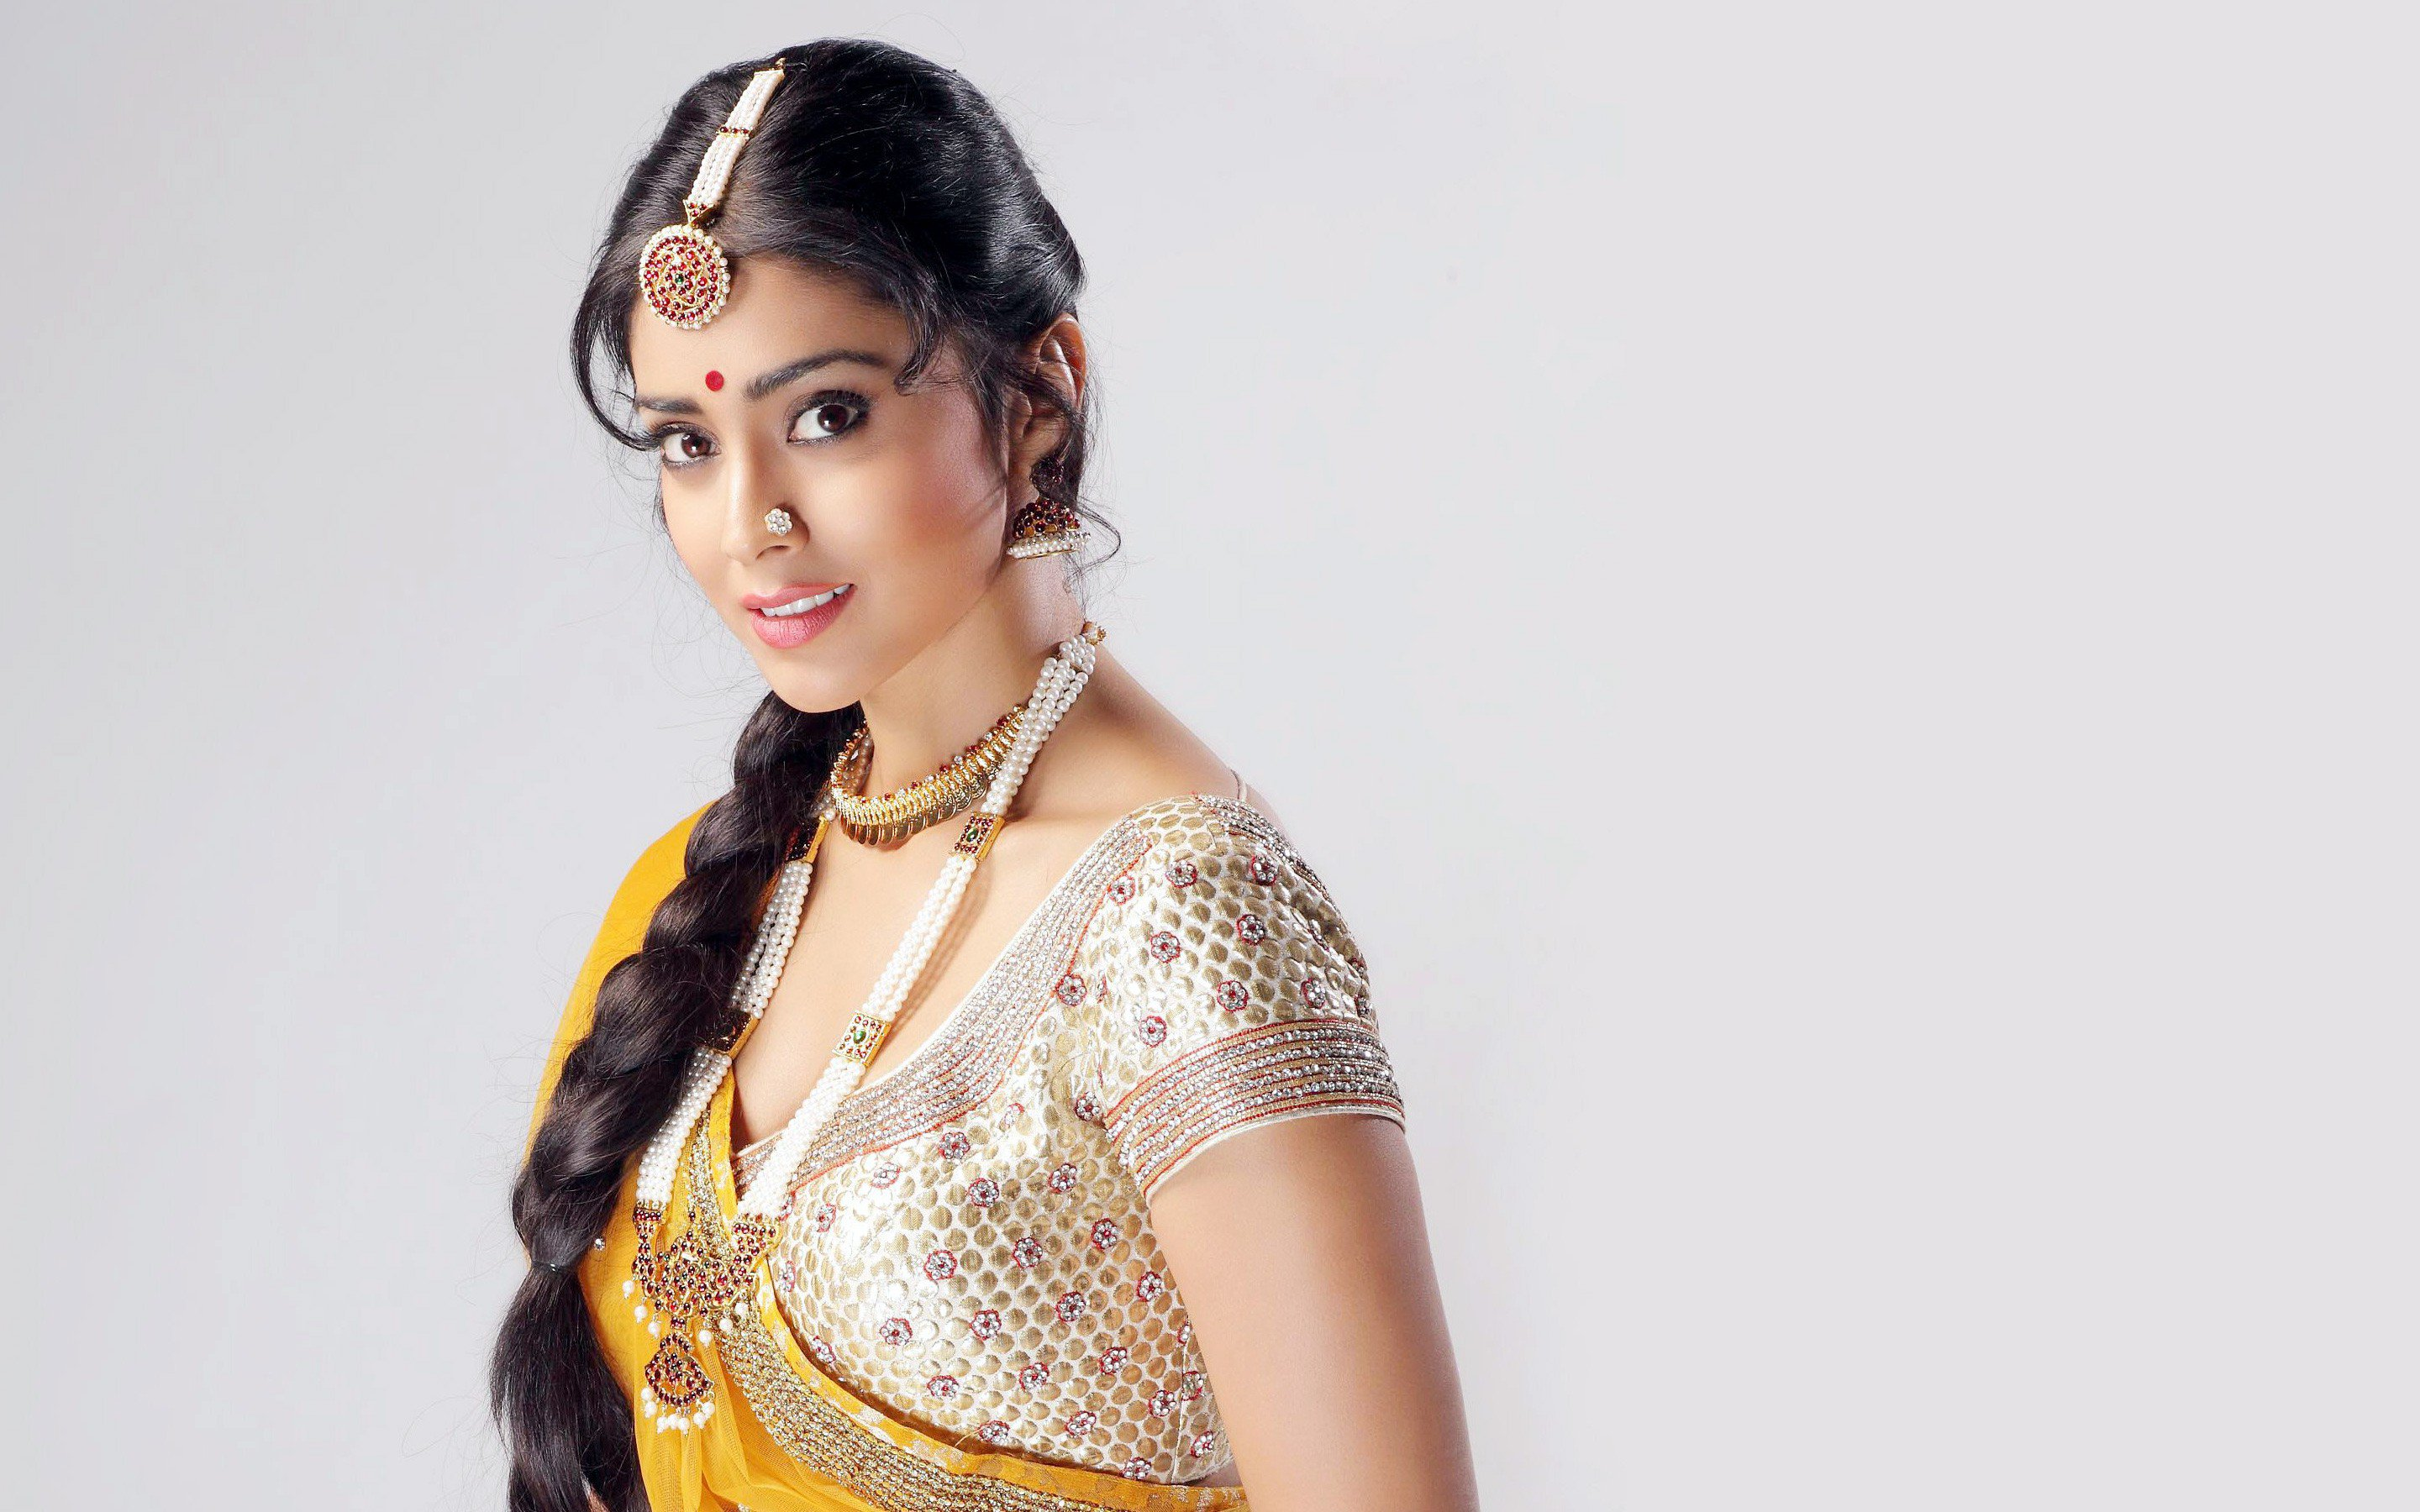 shriya saran wallpapers, images, backgrounds, photos and pictures